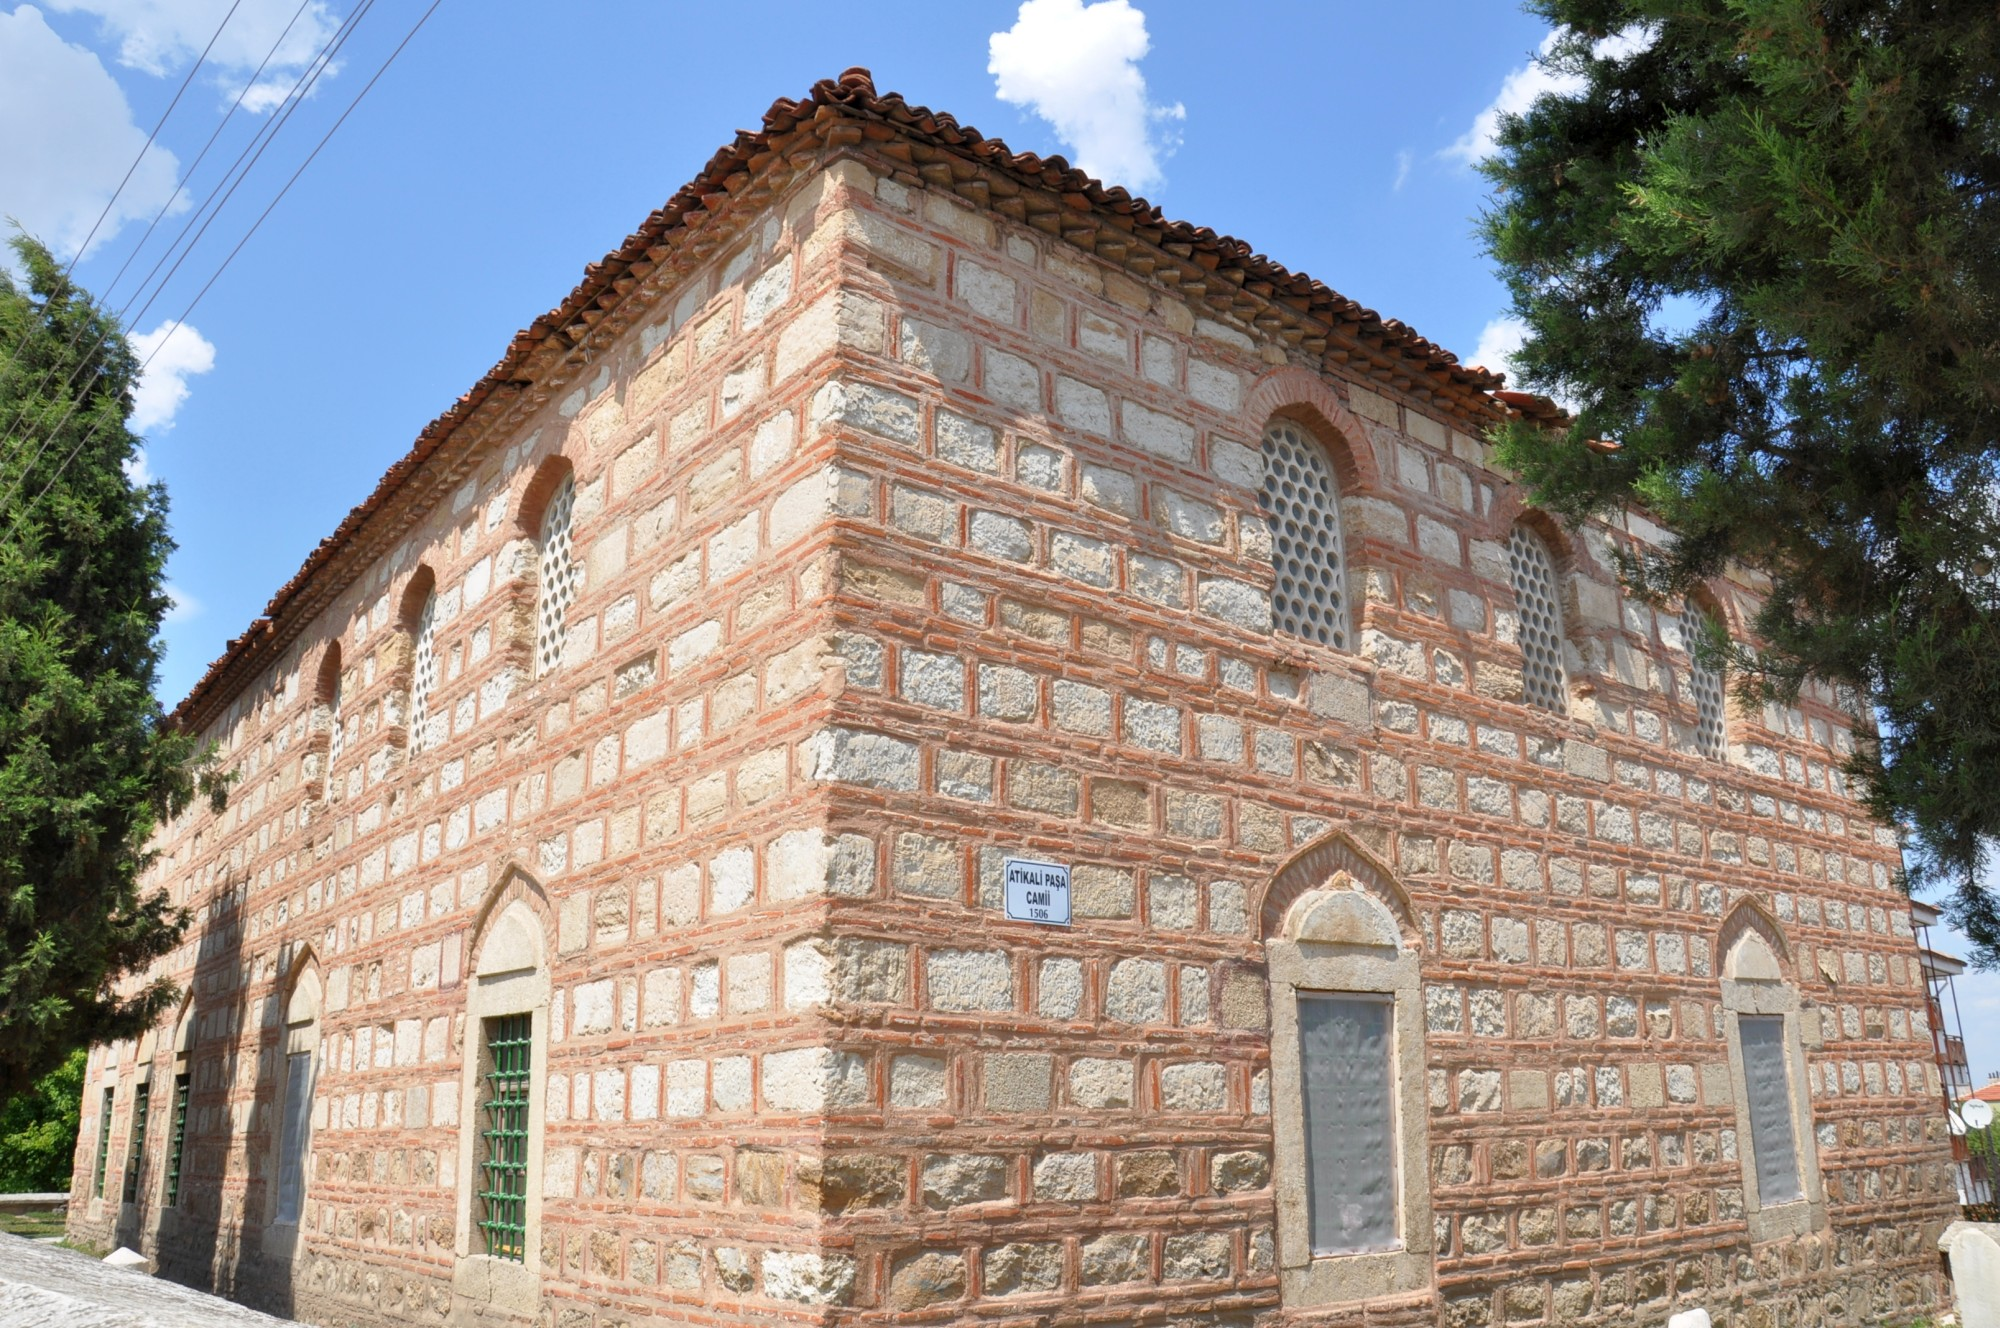 Atik Ali Pasha Mosque in Edirne (in 2012)